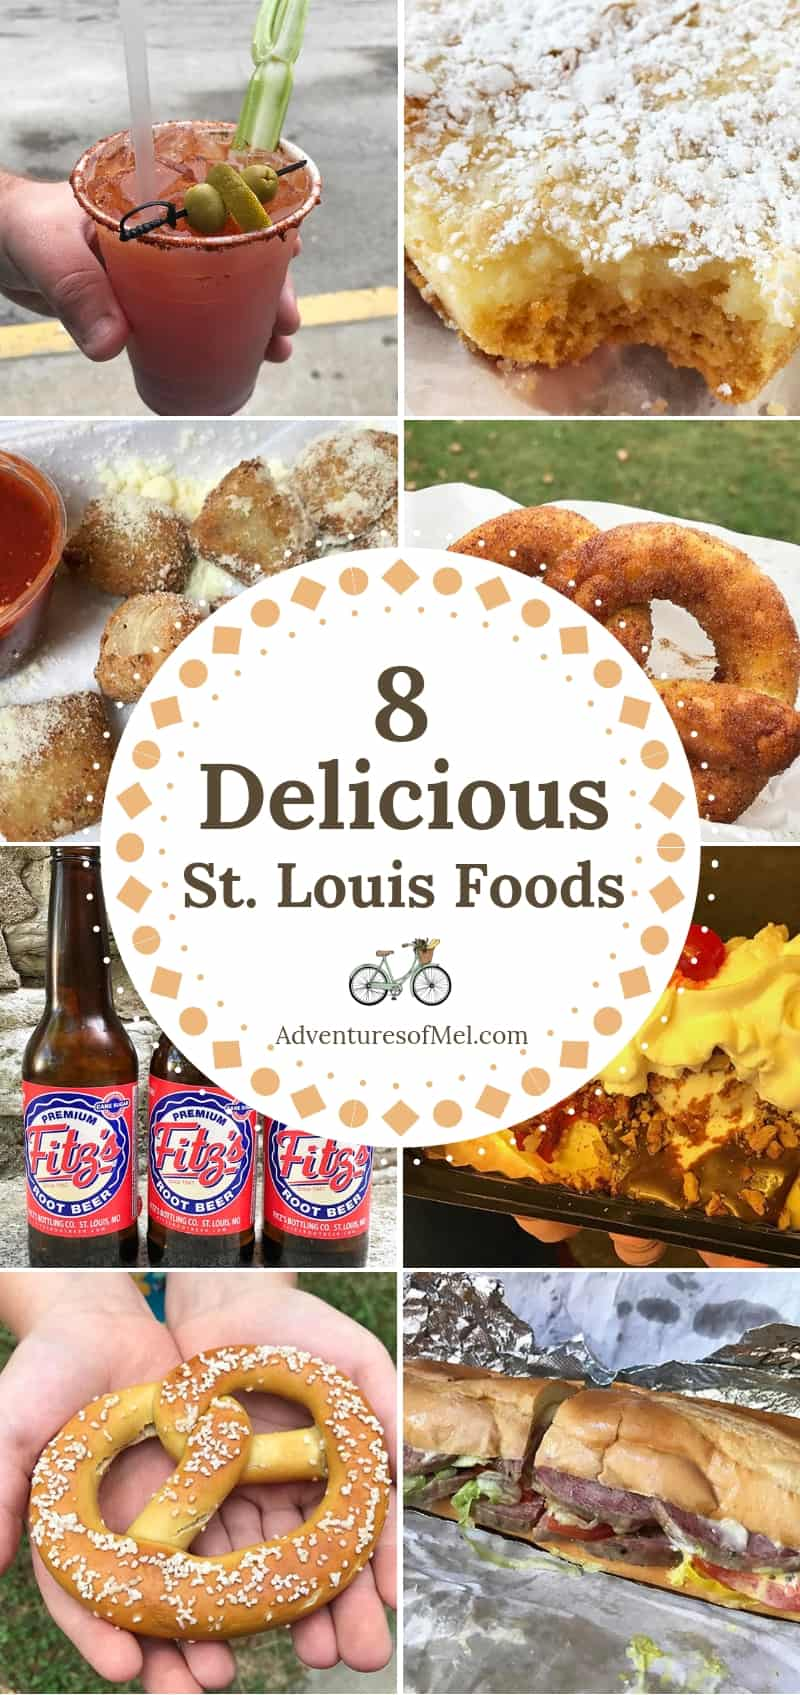 delicious must try St. Louis foods and best restaurants in St. Louis